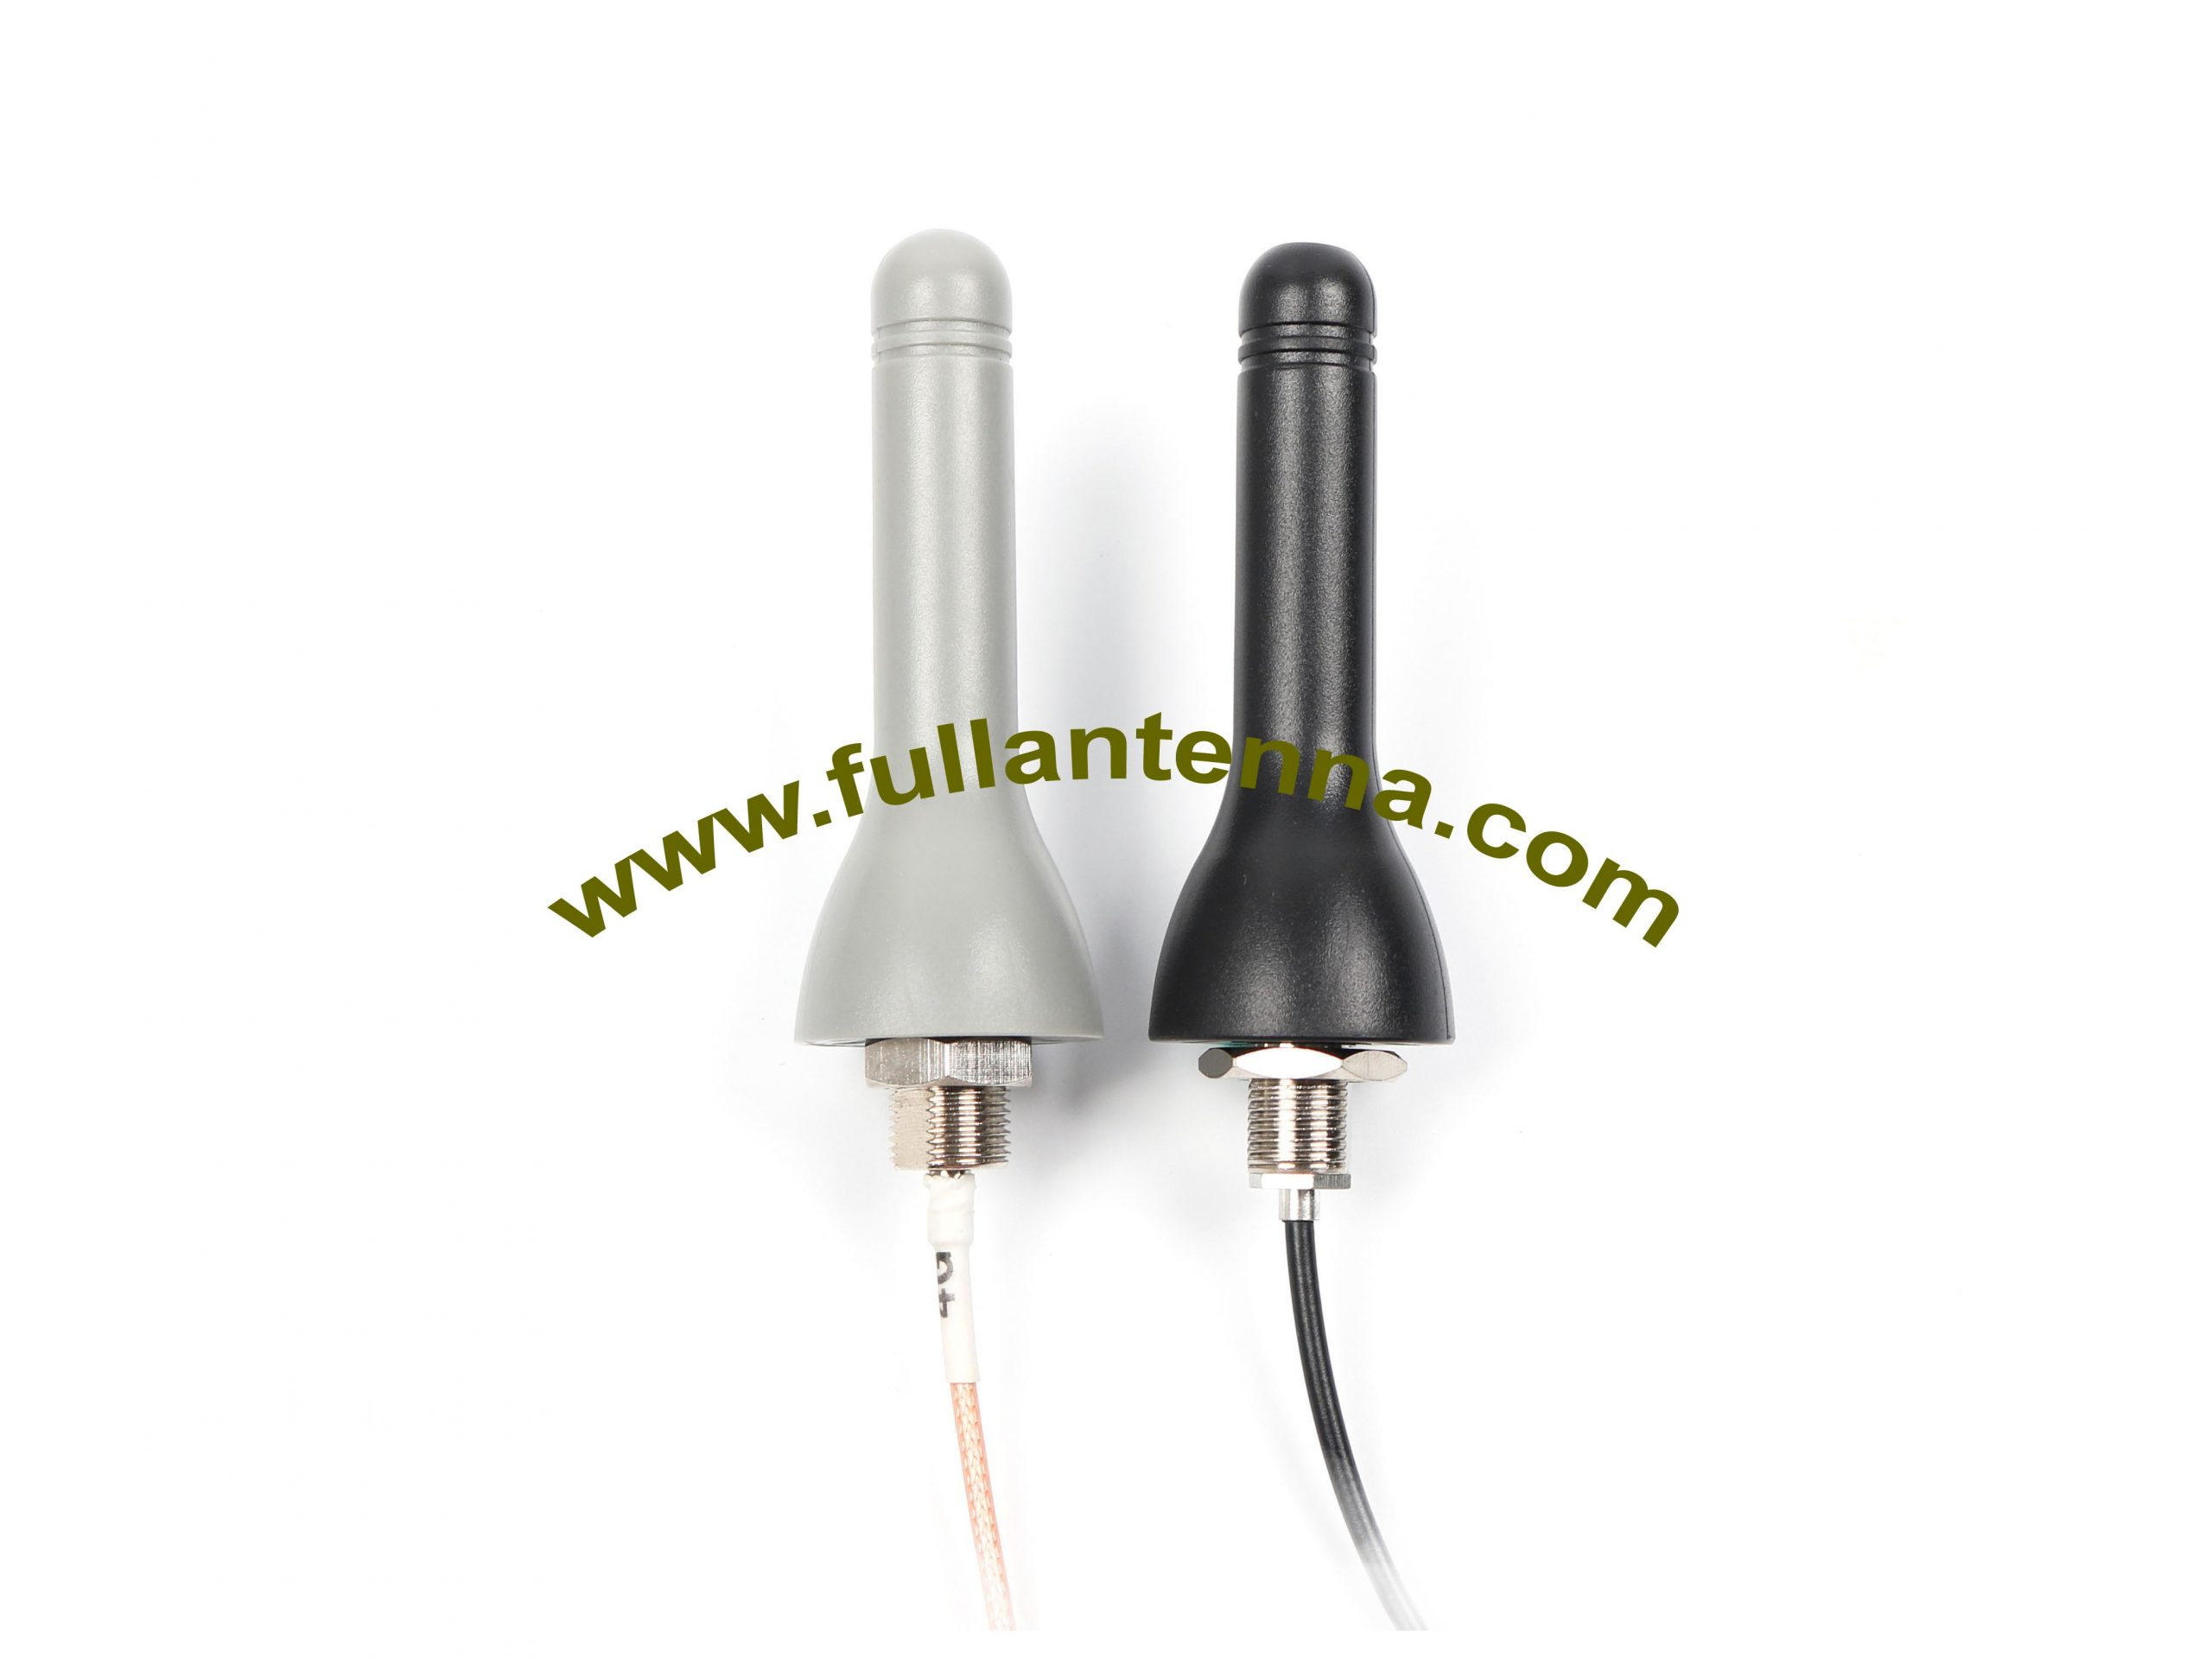 P/N:FALTE.0801,4G/LTE External Antenna,Grey or black color housing and screw mounting